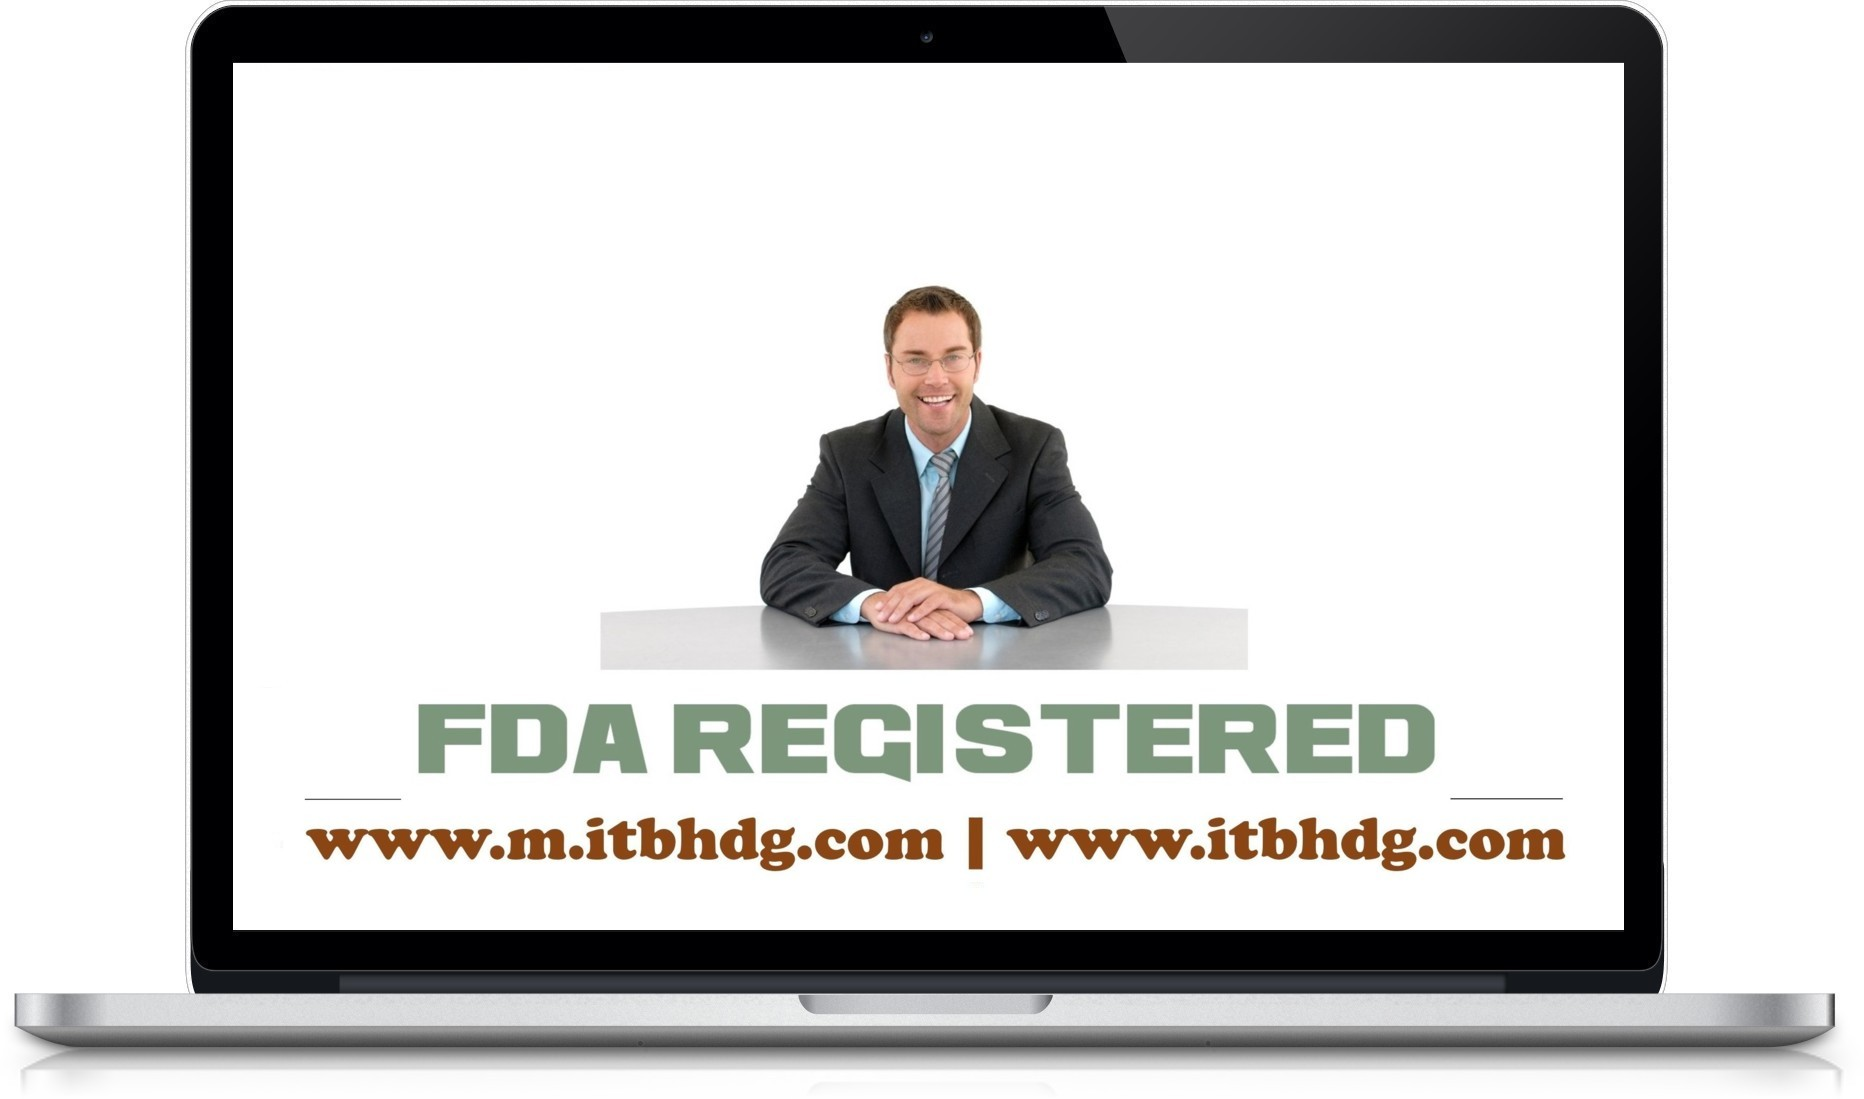 FDA Registration | INITIAL REGISTRATION | FOOD COMPANY | CLICK & SAVE 75% | www.m.itbhdg.com | www.itbhdg.com